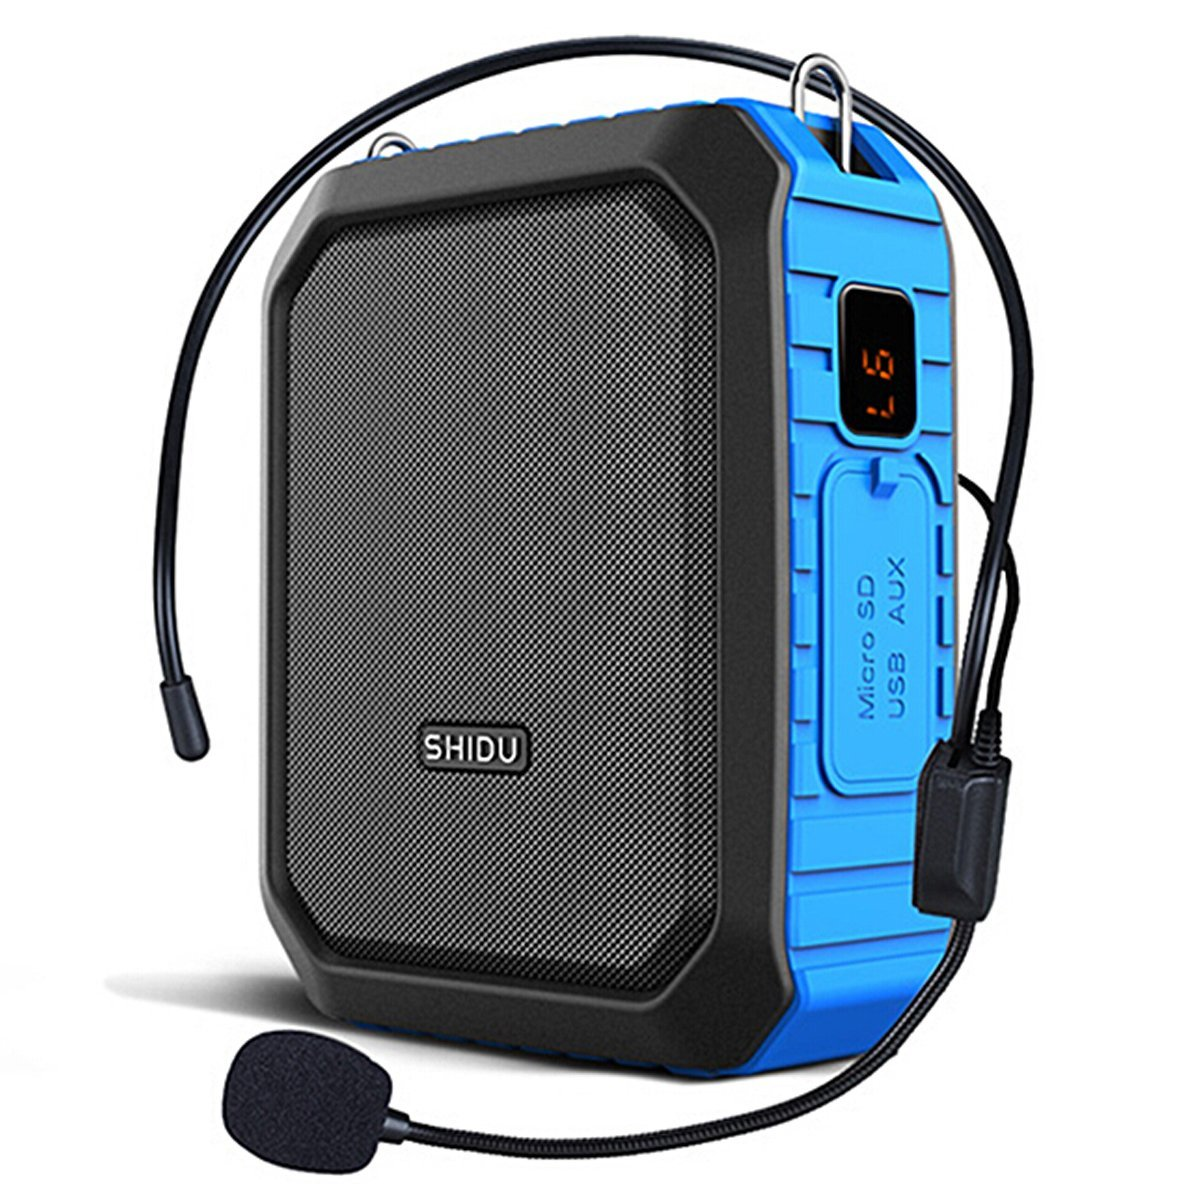 Voice Amplifier with Wired Microphone Headset 18W Portable Bluetooth Speaker Megaphone Loudspeaker Voice Recording Power Bank Waterproof IPX5 for Outdoor Activities, Shower, Teaching (Blue-Wired)